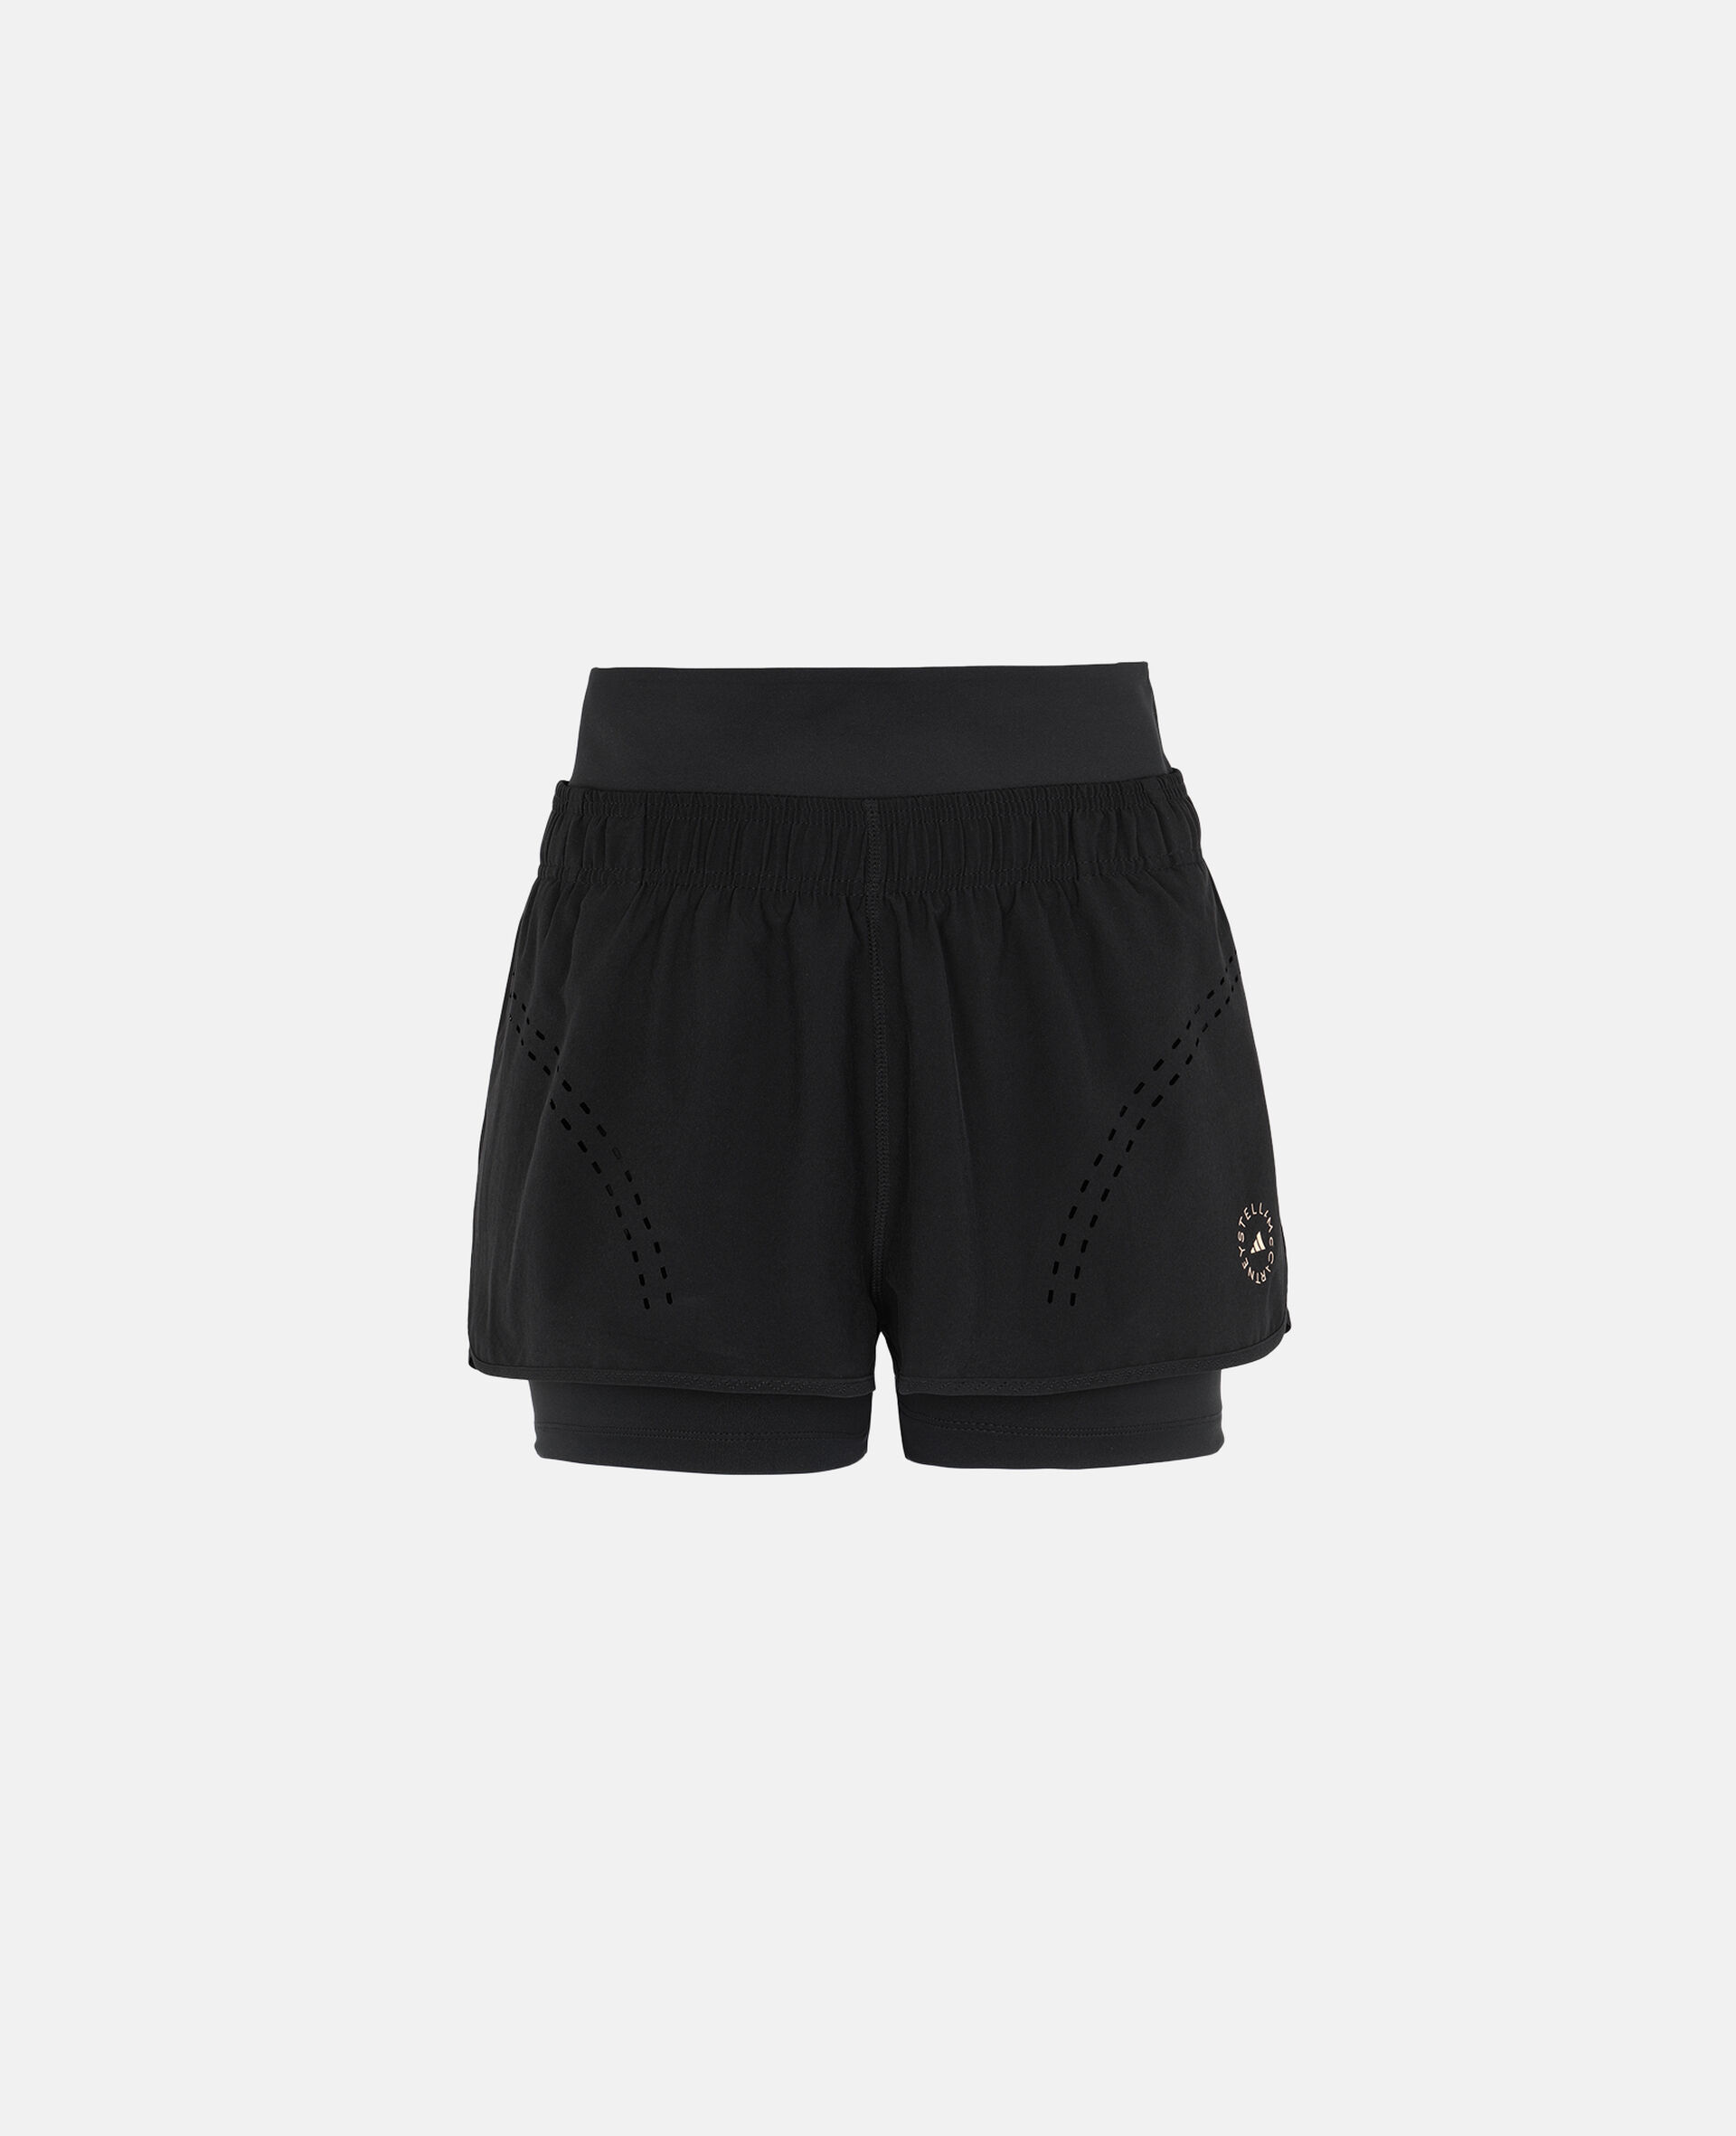 Black TruePurpose Training Short-Black-large image number 4